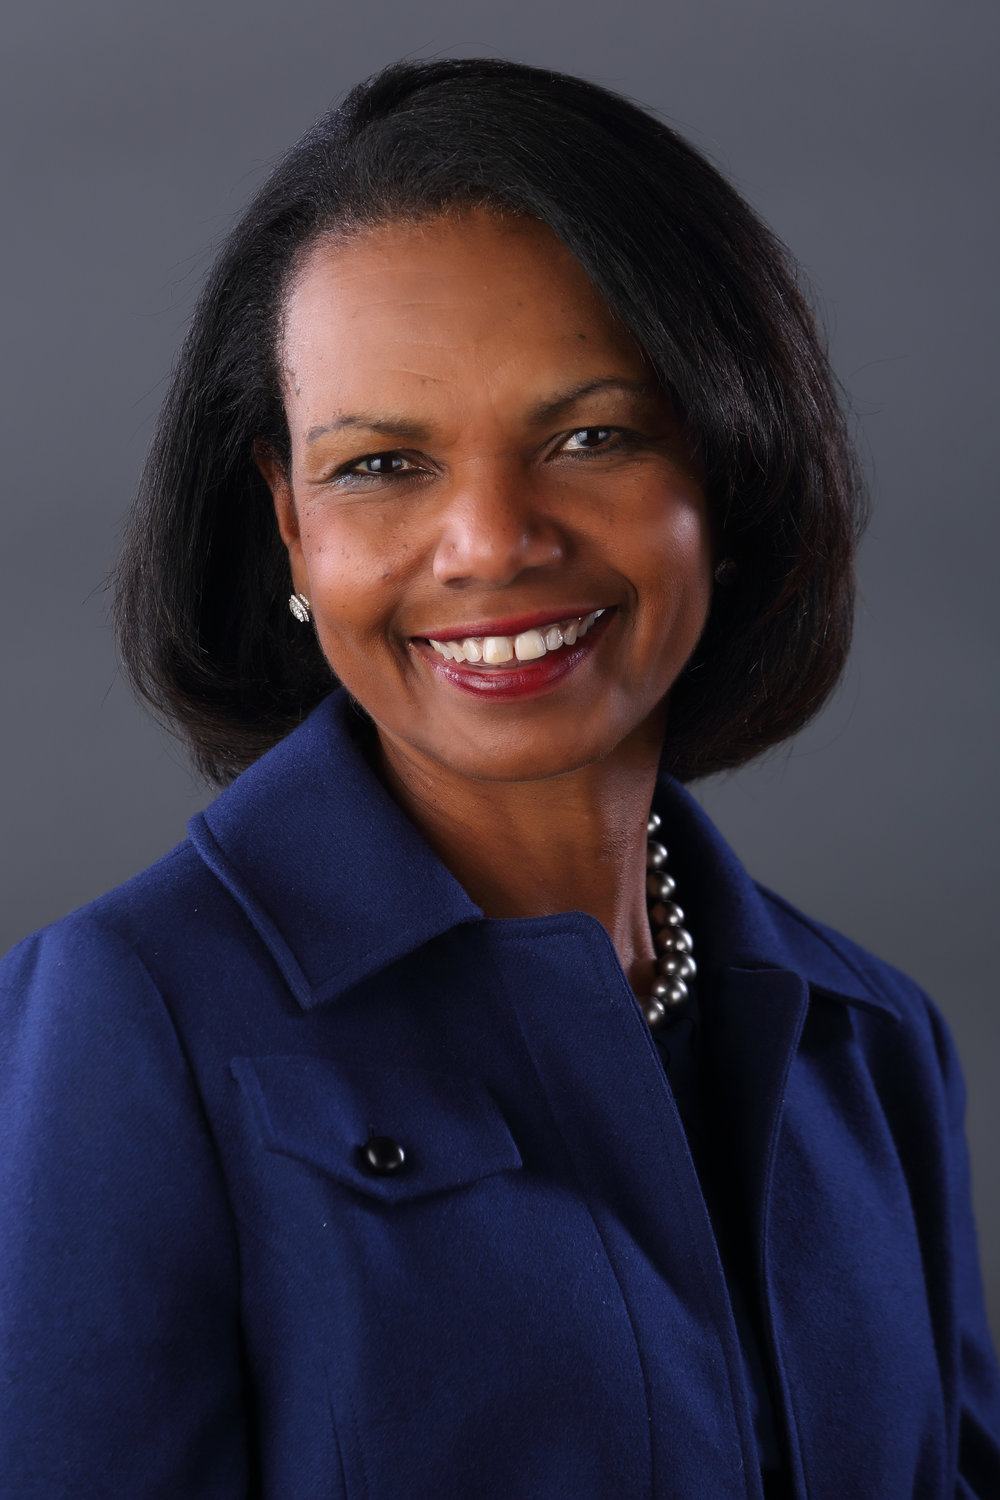 Condoleezza Rice - First female African-American Secretary of State